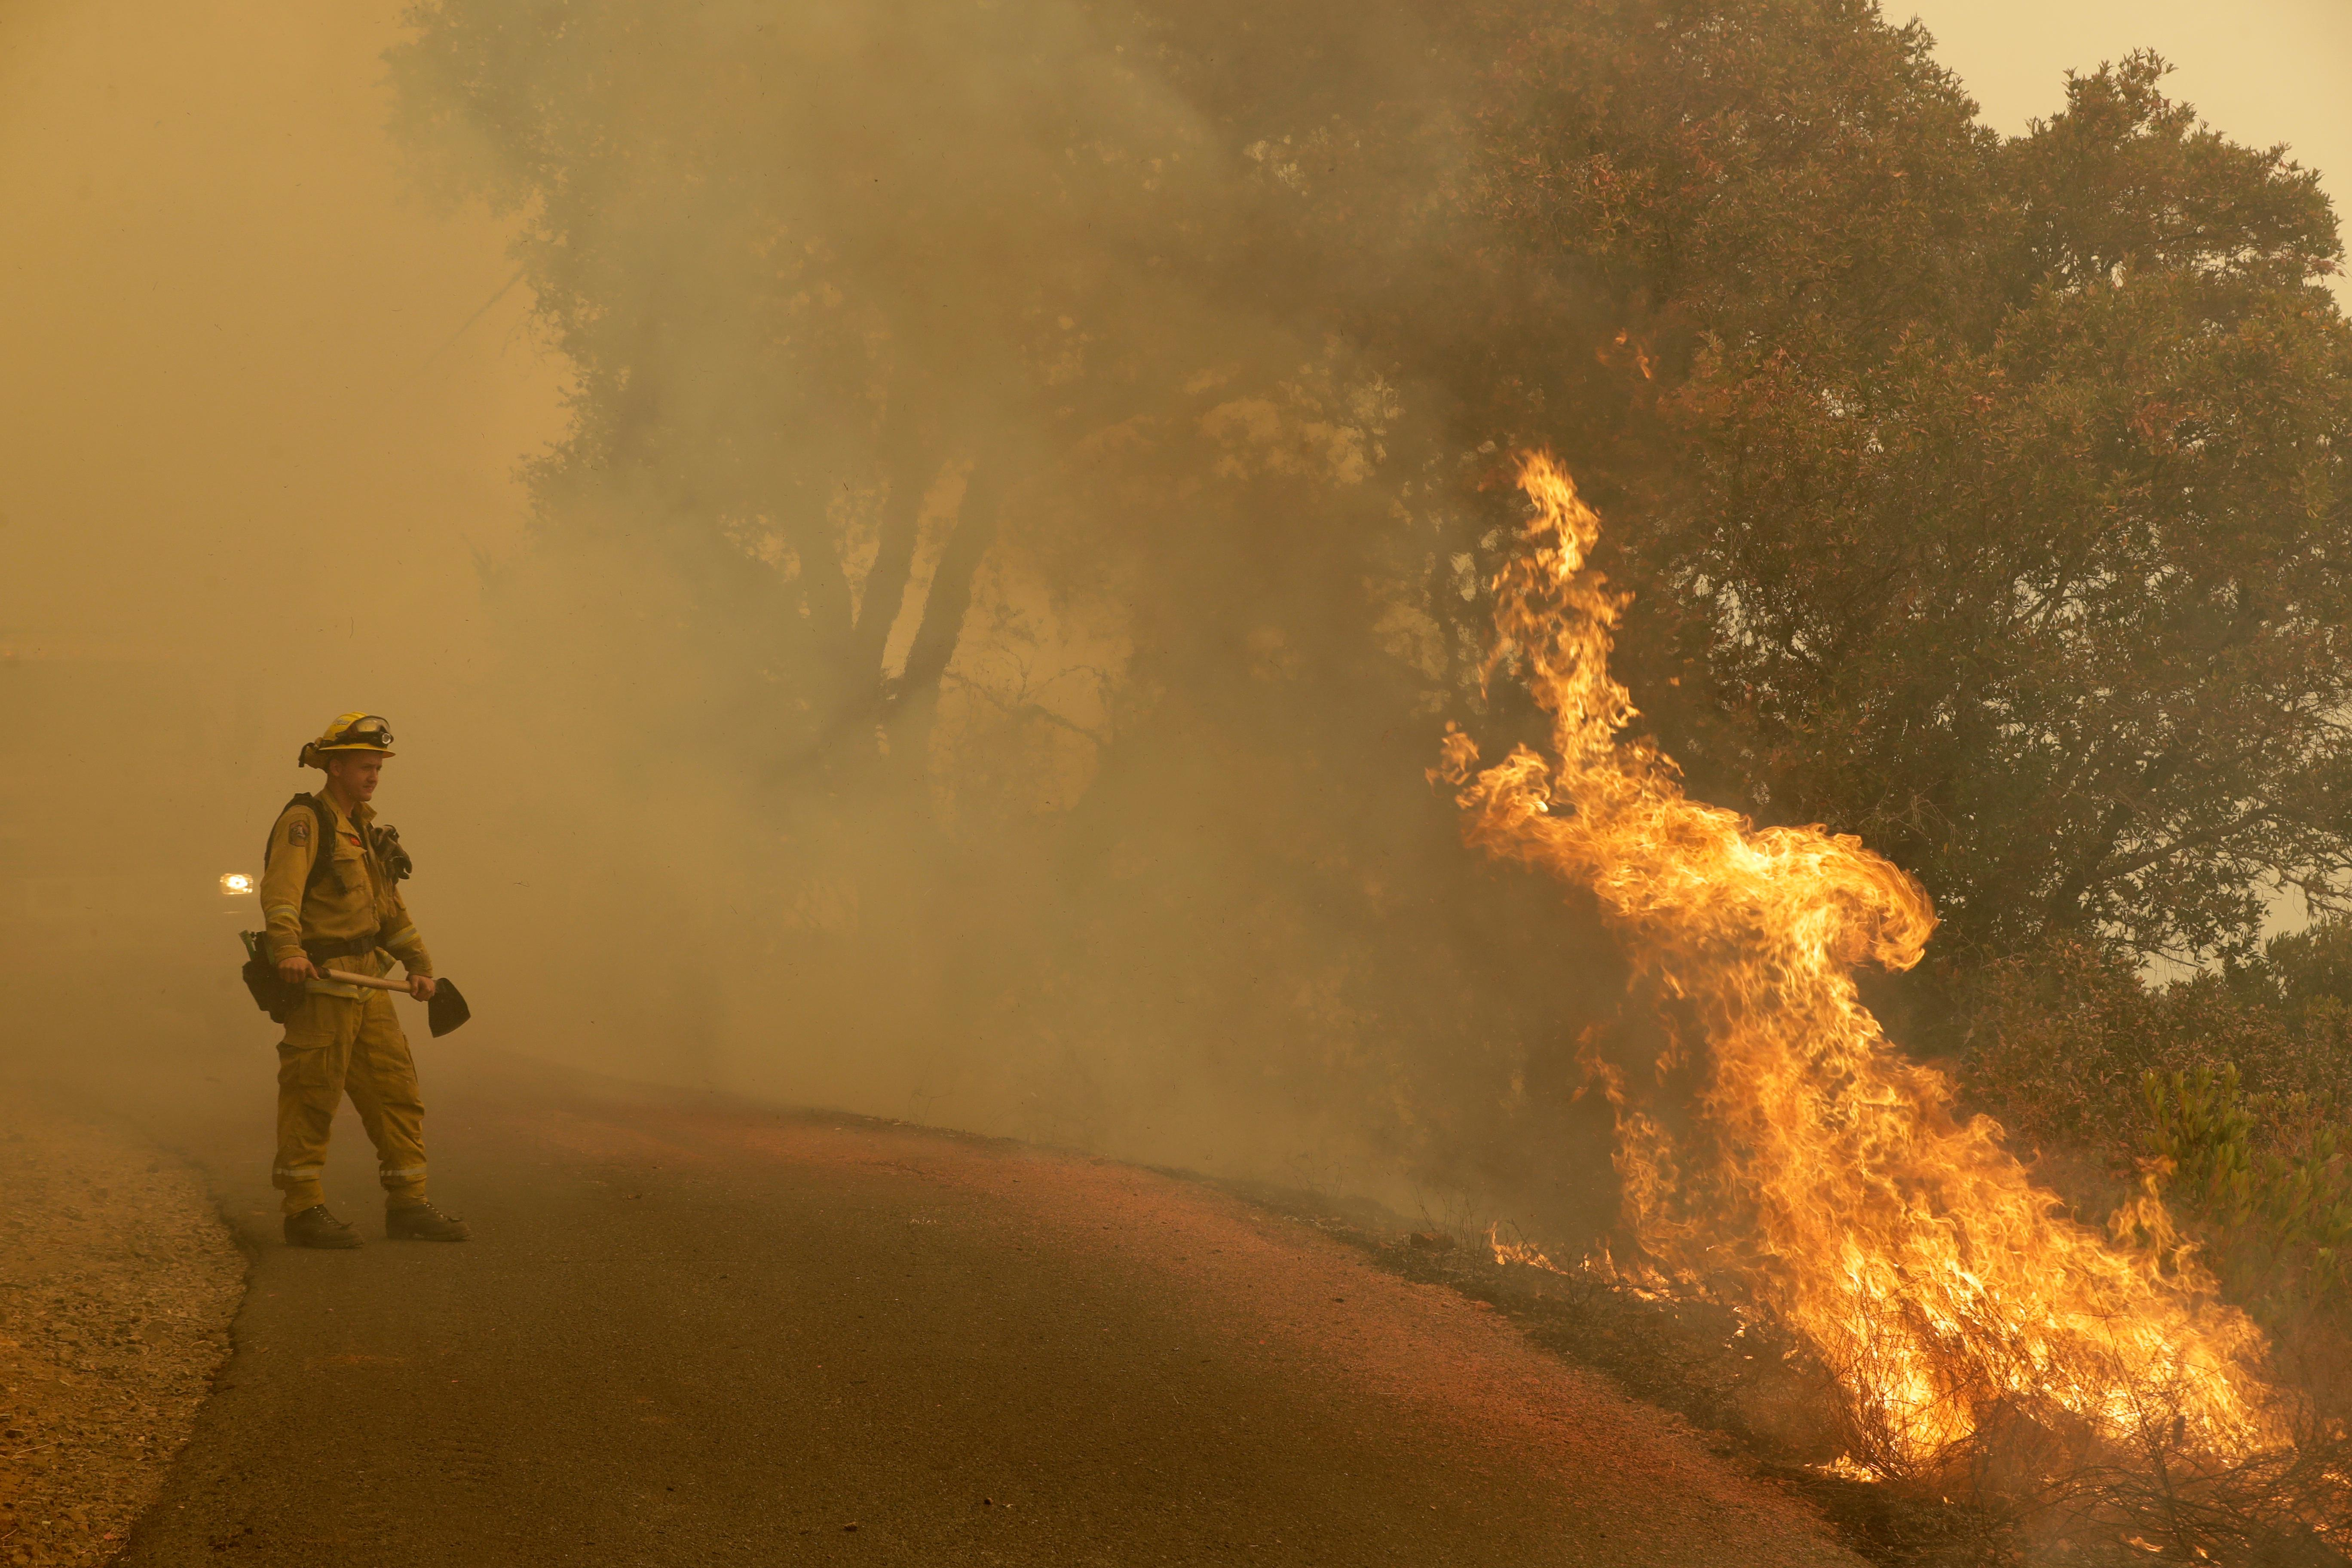 A firefighter monitors flames from a blackburn operation Friday, Oct. 13, 2017, in Glen Ellen, Calif. (AP Photo/Marcio Jose Sanchez)